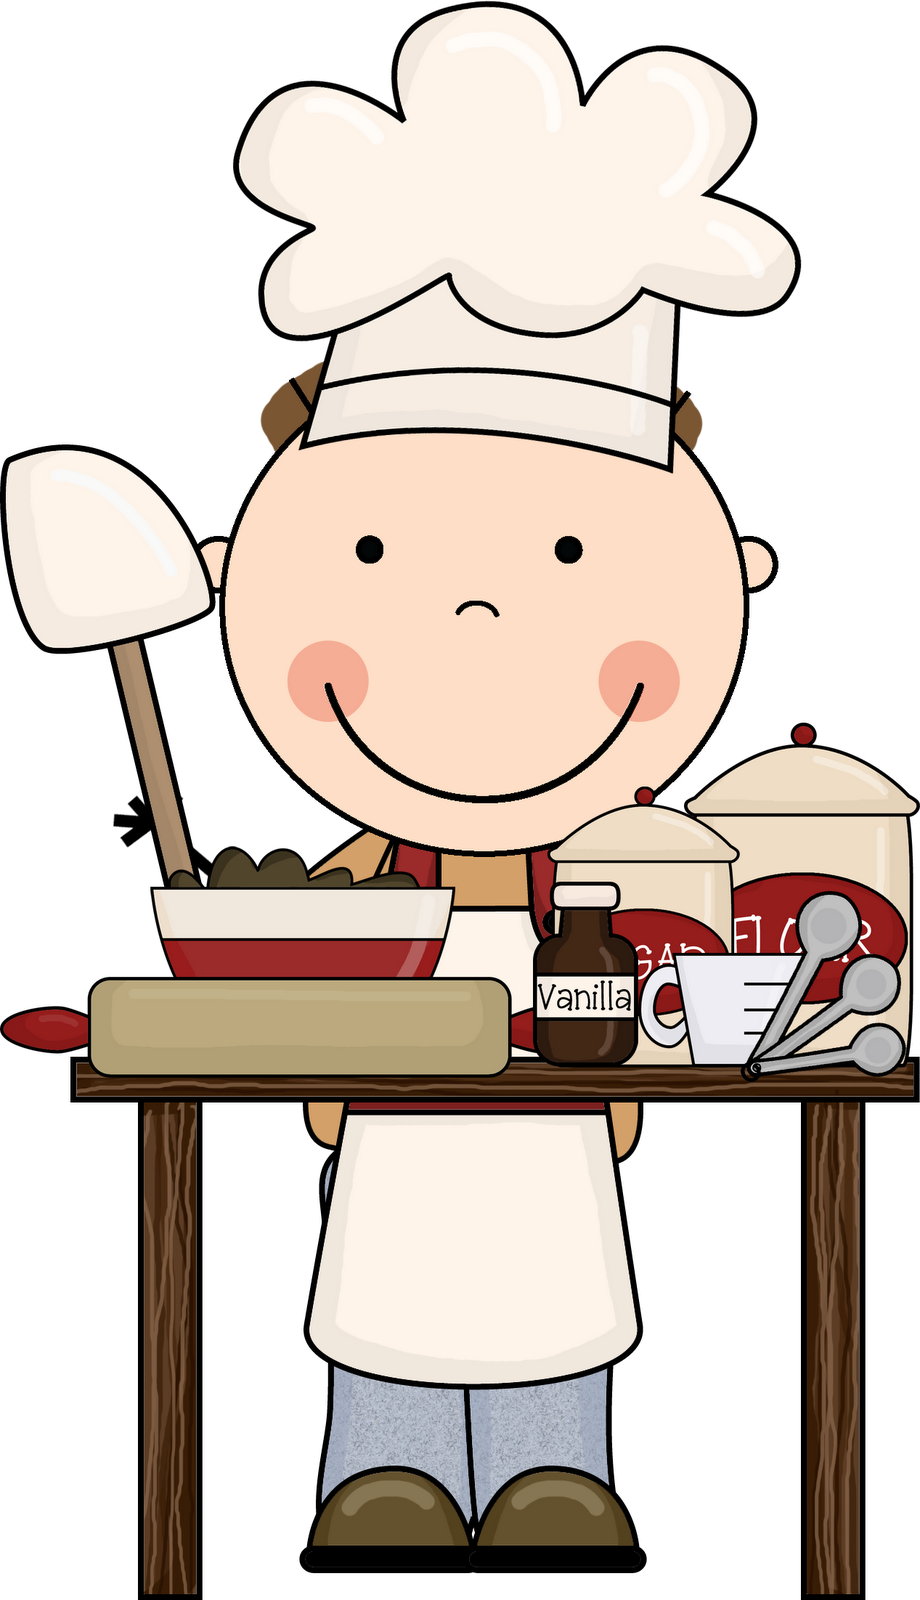 Scrapbook clipart kitchen. Sample image from scrappindoodles